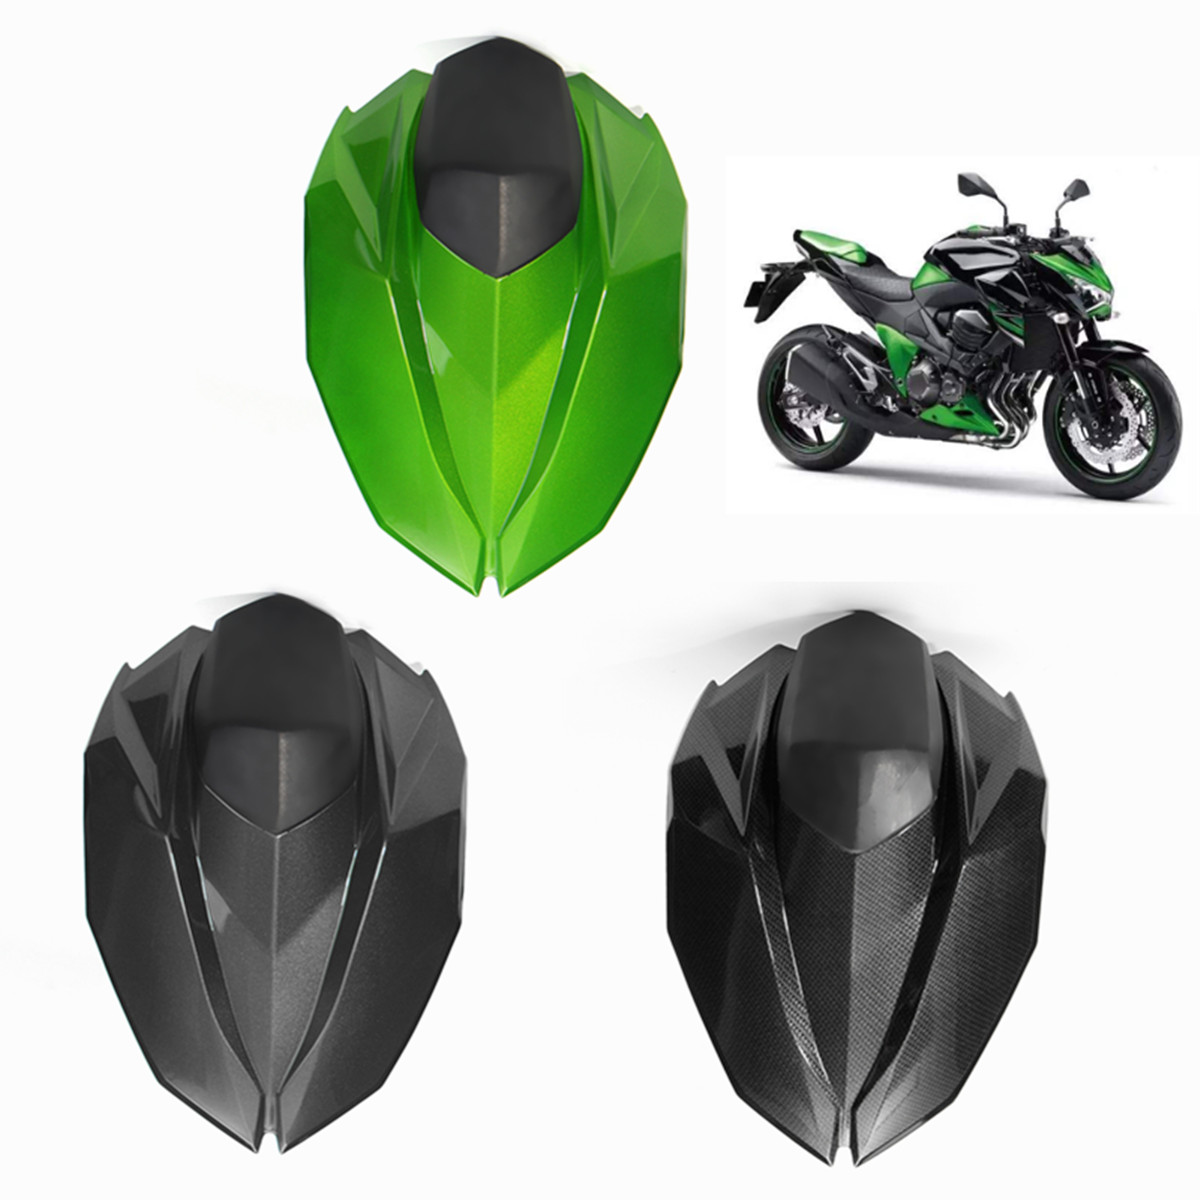 Motorcycle Rear Seat Cover Cowl Rear Fairing Set Plastic Passenger Seat Pillion for Kawasaki Z800 Z 800 2013 2014 2015 2016Motorcycle Rear Seat Cover Cowl Rear Fairing Set Plastic Passenger Seat Pillion for Kawasaki Z800 Z 800 2013 2014 2015 2016